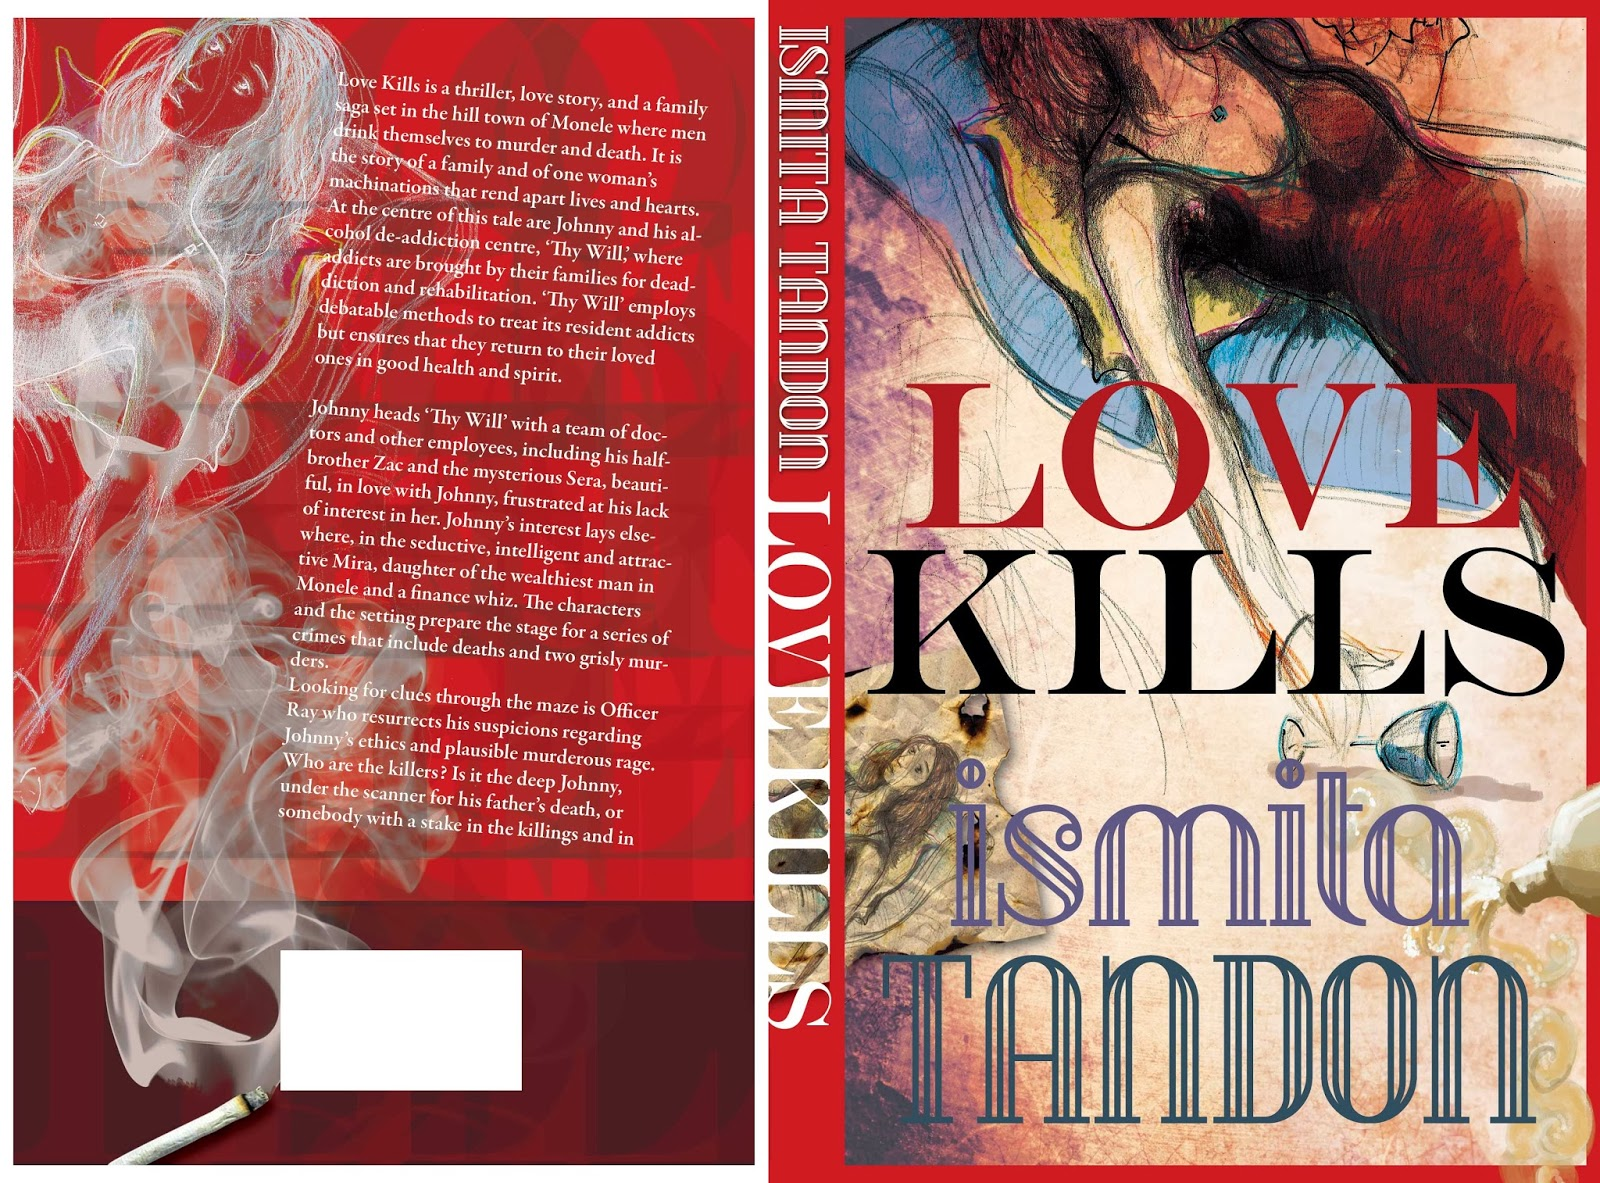 Love Kills, Book review, Ismita Tandon